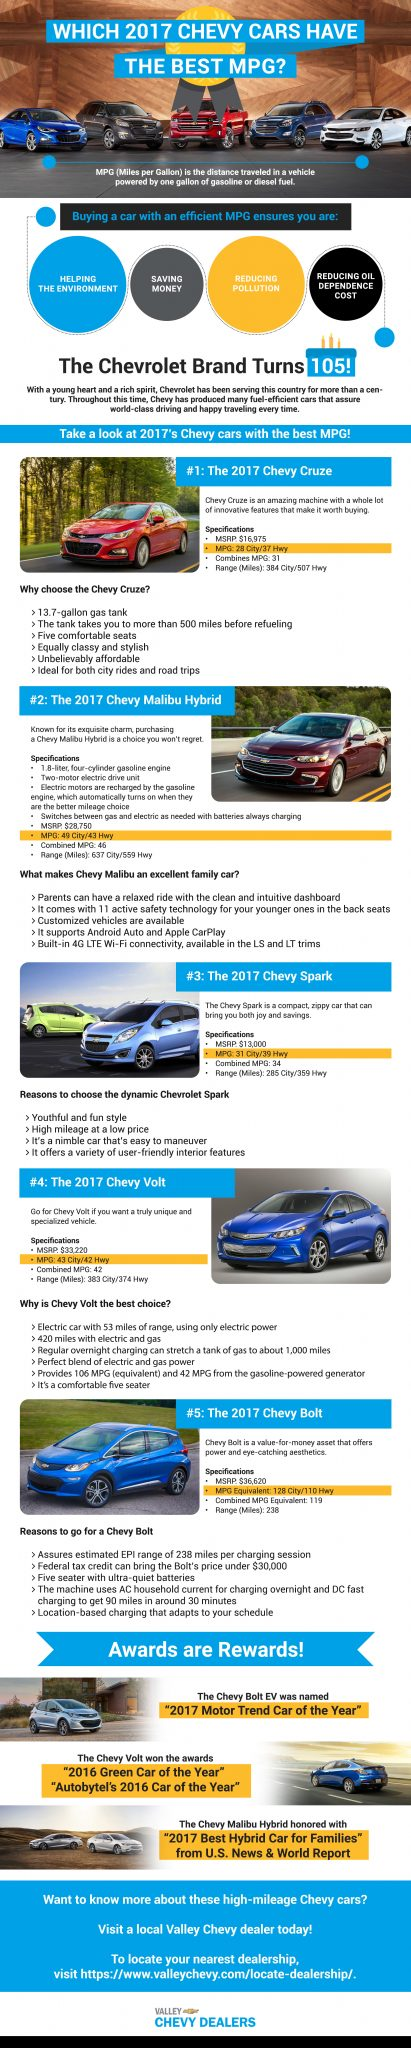 Valley Chevy - Which 2017 Chevrolet Cars Have Best MPG - Infographic